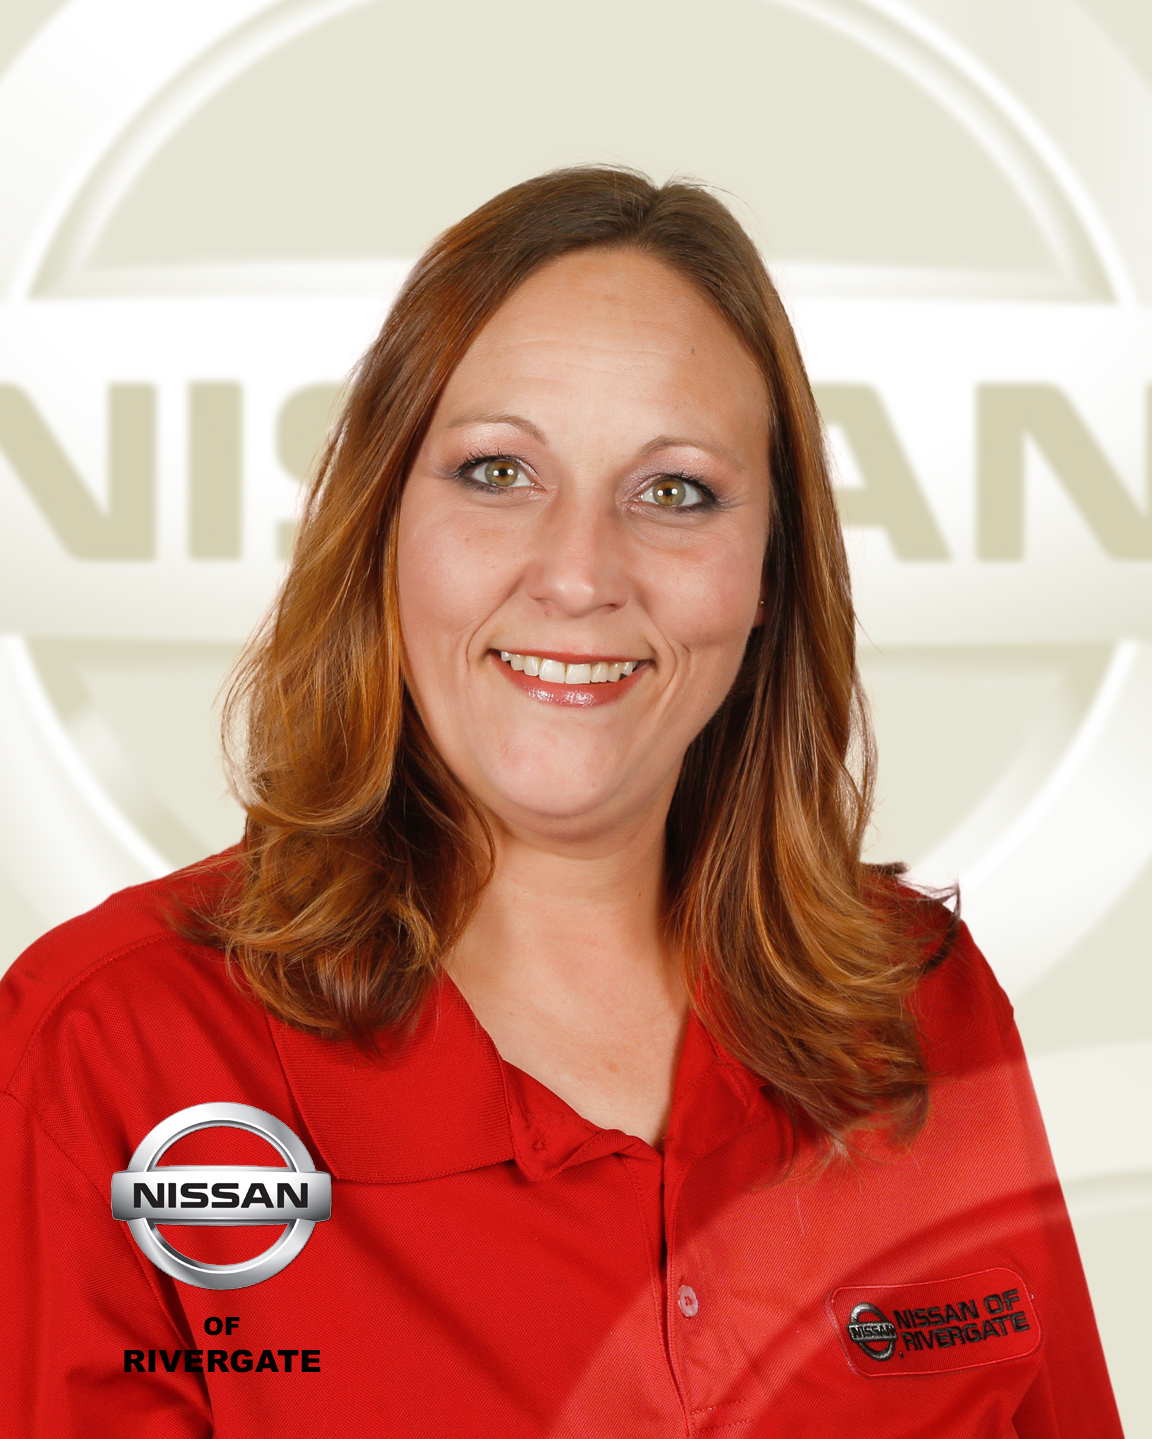 Ted Russell Nissan >> Meet the Team | Nissan of Rivergate in Madison, TN